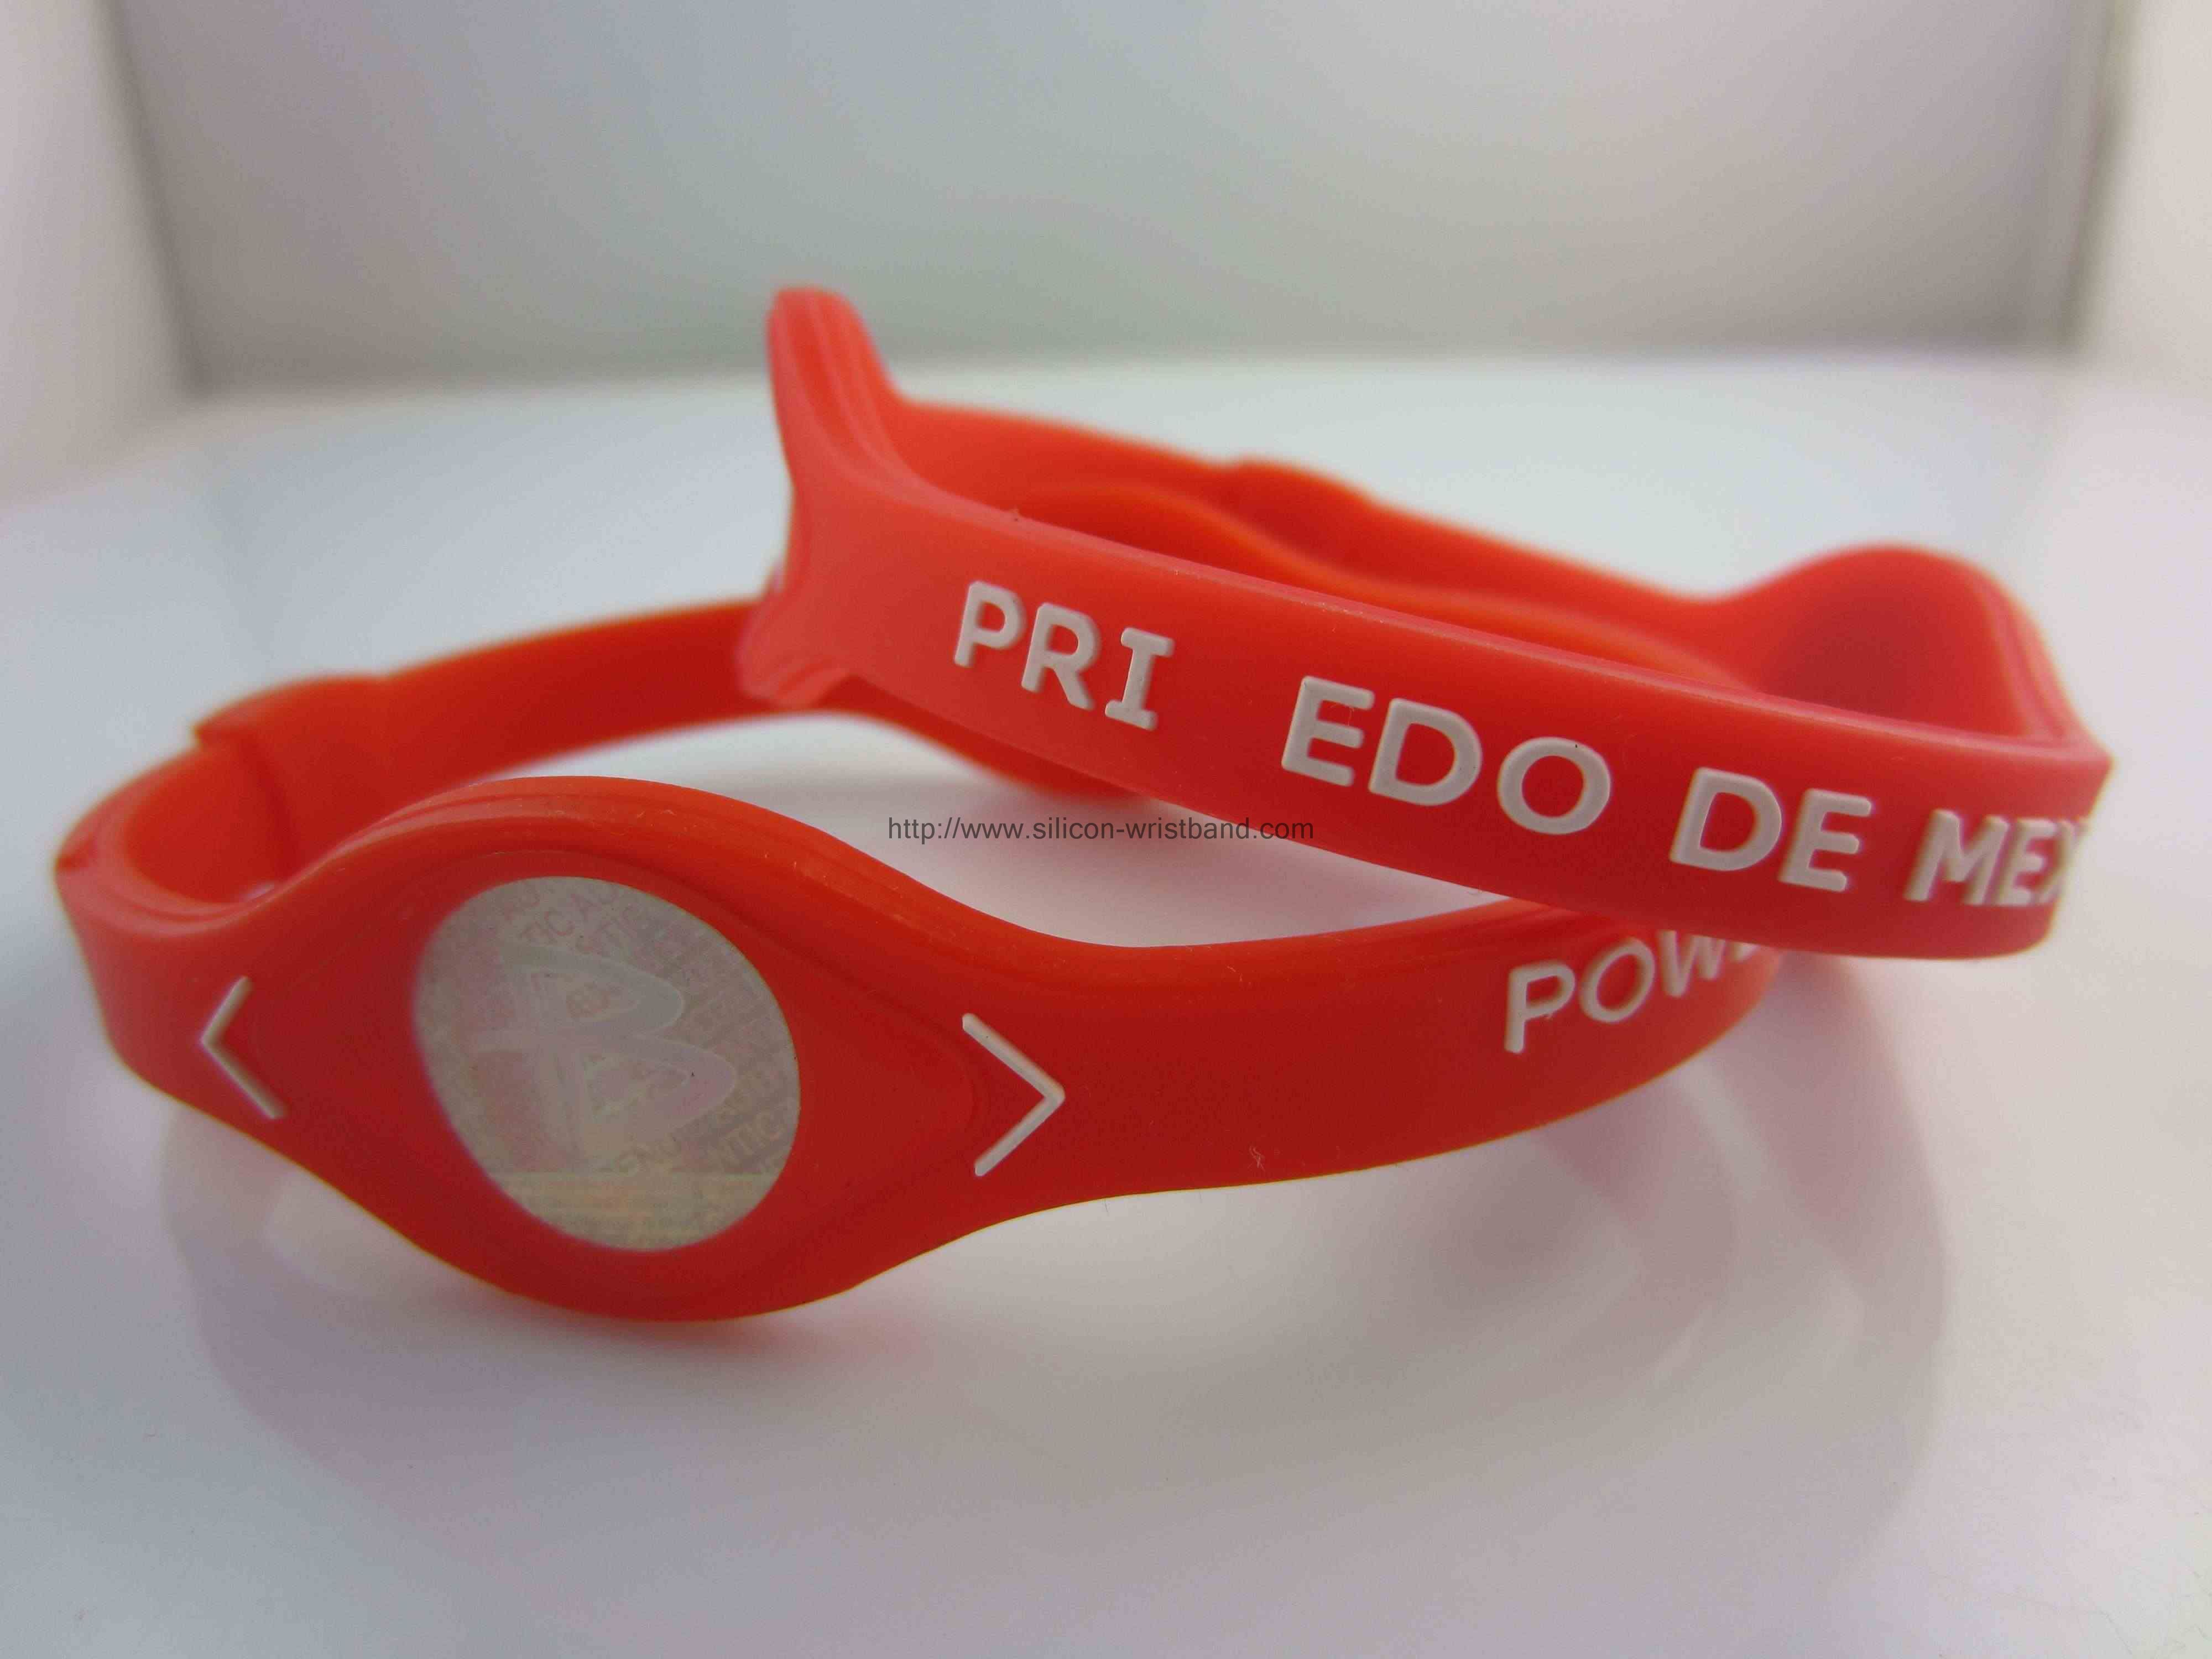 How to get the silicone wristbands discount?